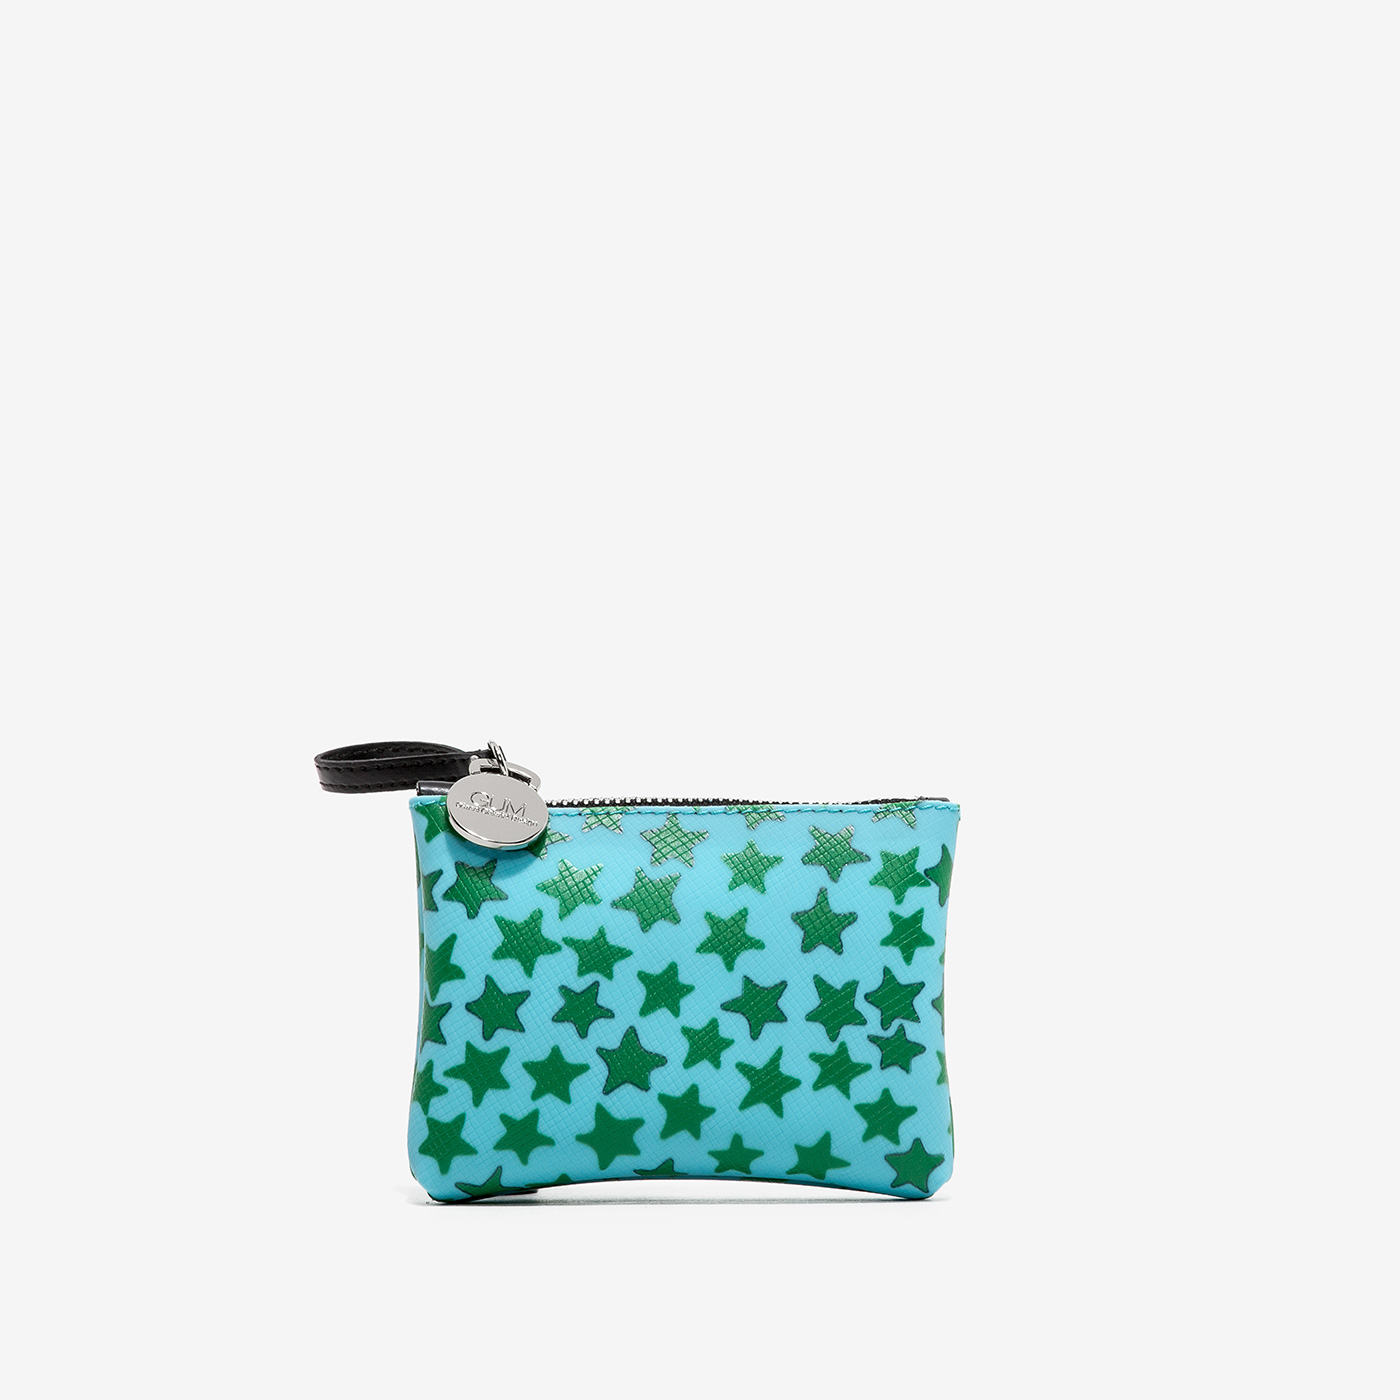 GUM: CLUTCH BAG KEYRING WITH STARS